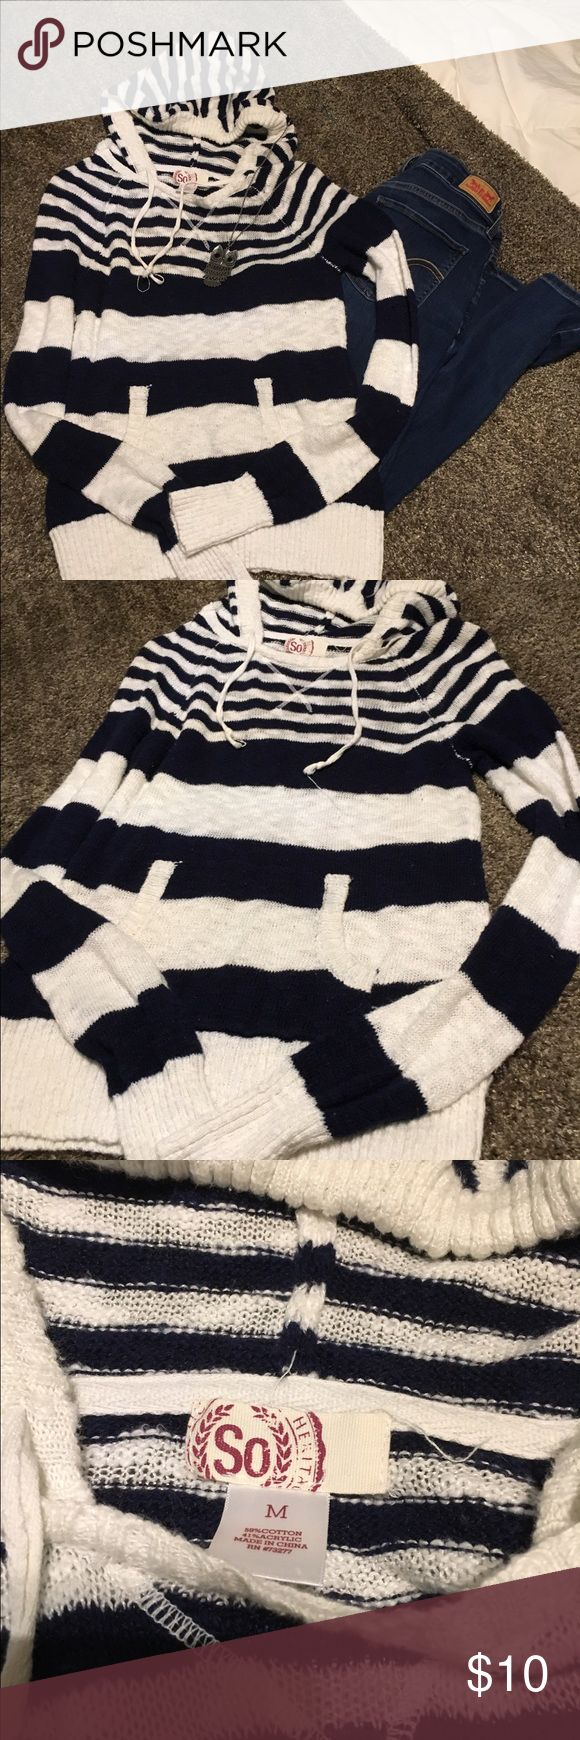 "Blue and White Hoodie Sweater by ""SO"" from Target Blue and White Hoodie Sweater By ""SO"" From Target💐long sleeves💐front pouch pocket 💐size Med💐bust 16""💐23 1/2"" long💐(PANTS AND JEWELRY ARE NOT FOR SALE!!)💐 SO from Target Tops Sweatshirts & Hoodies"